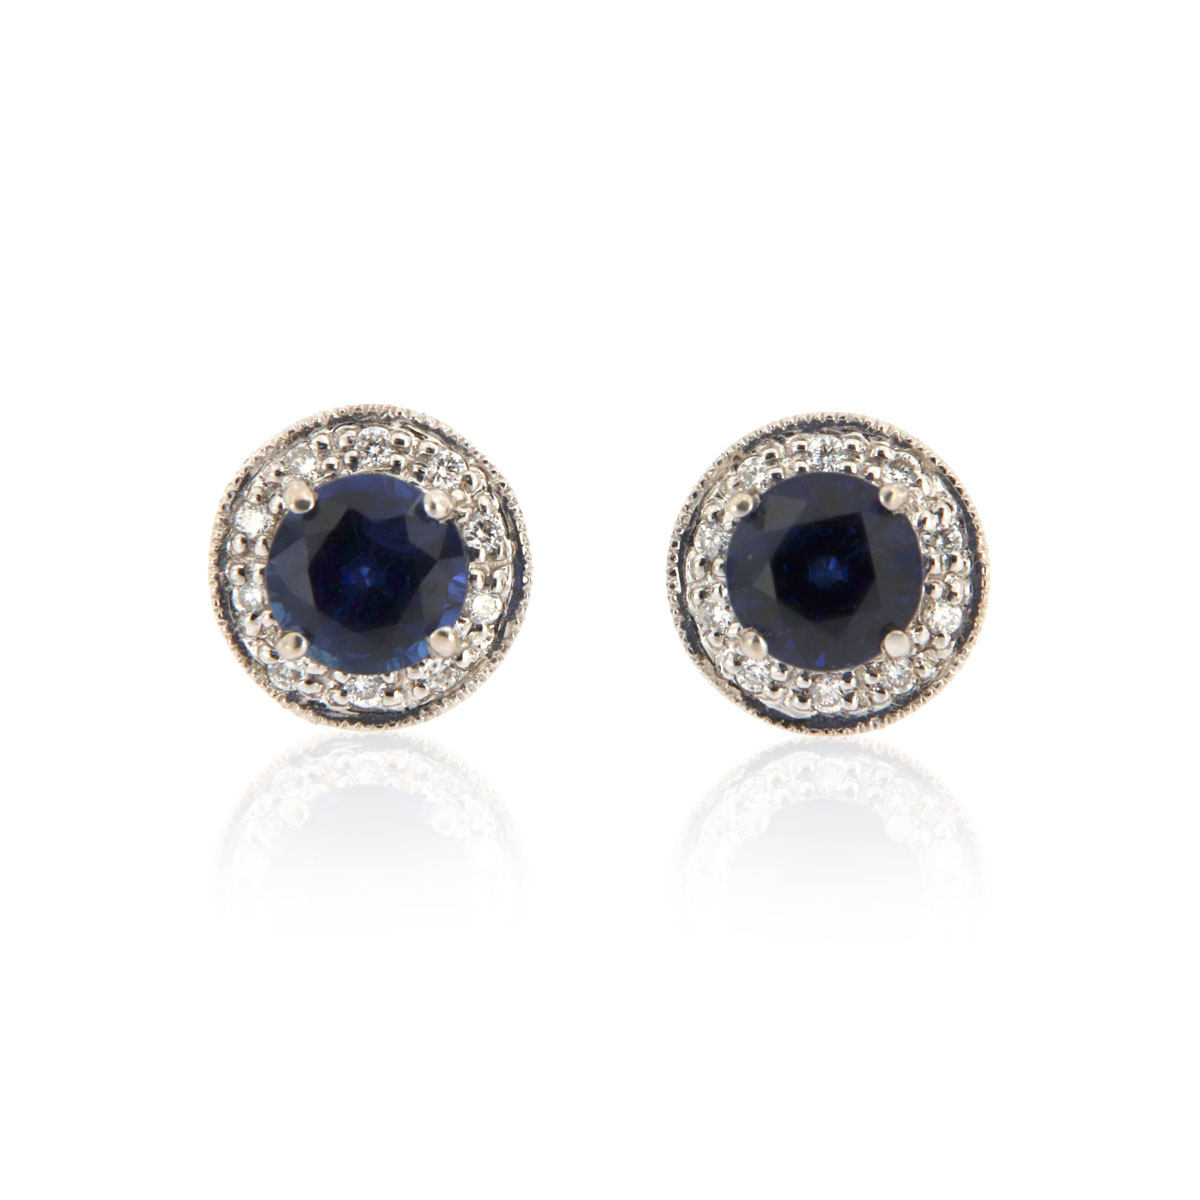 18K White Gold Halo Diamonds & Blue Sapphires Earrings ( 1 ct. tw)